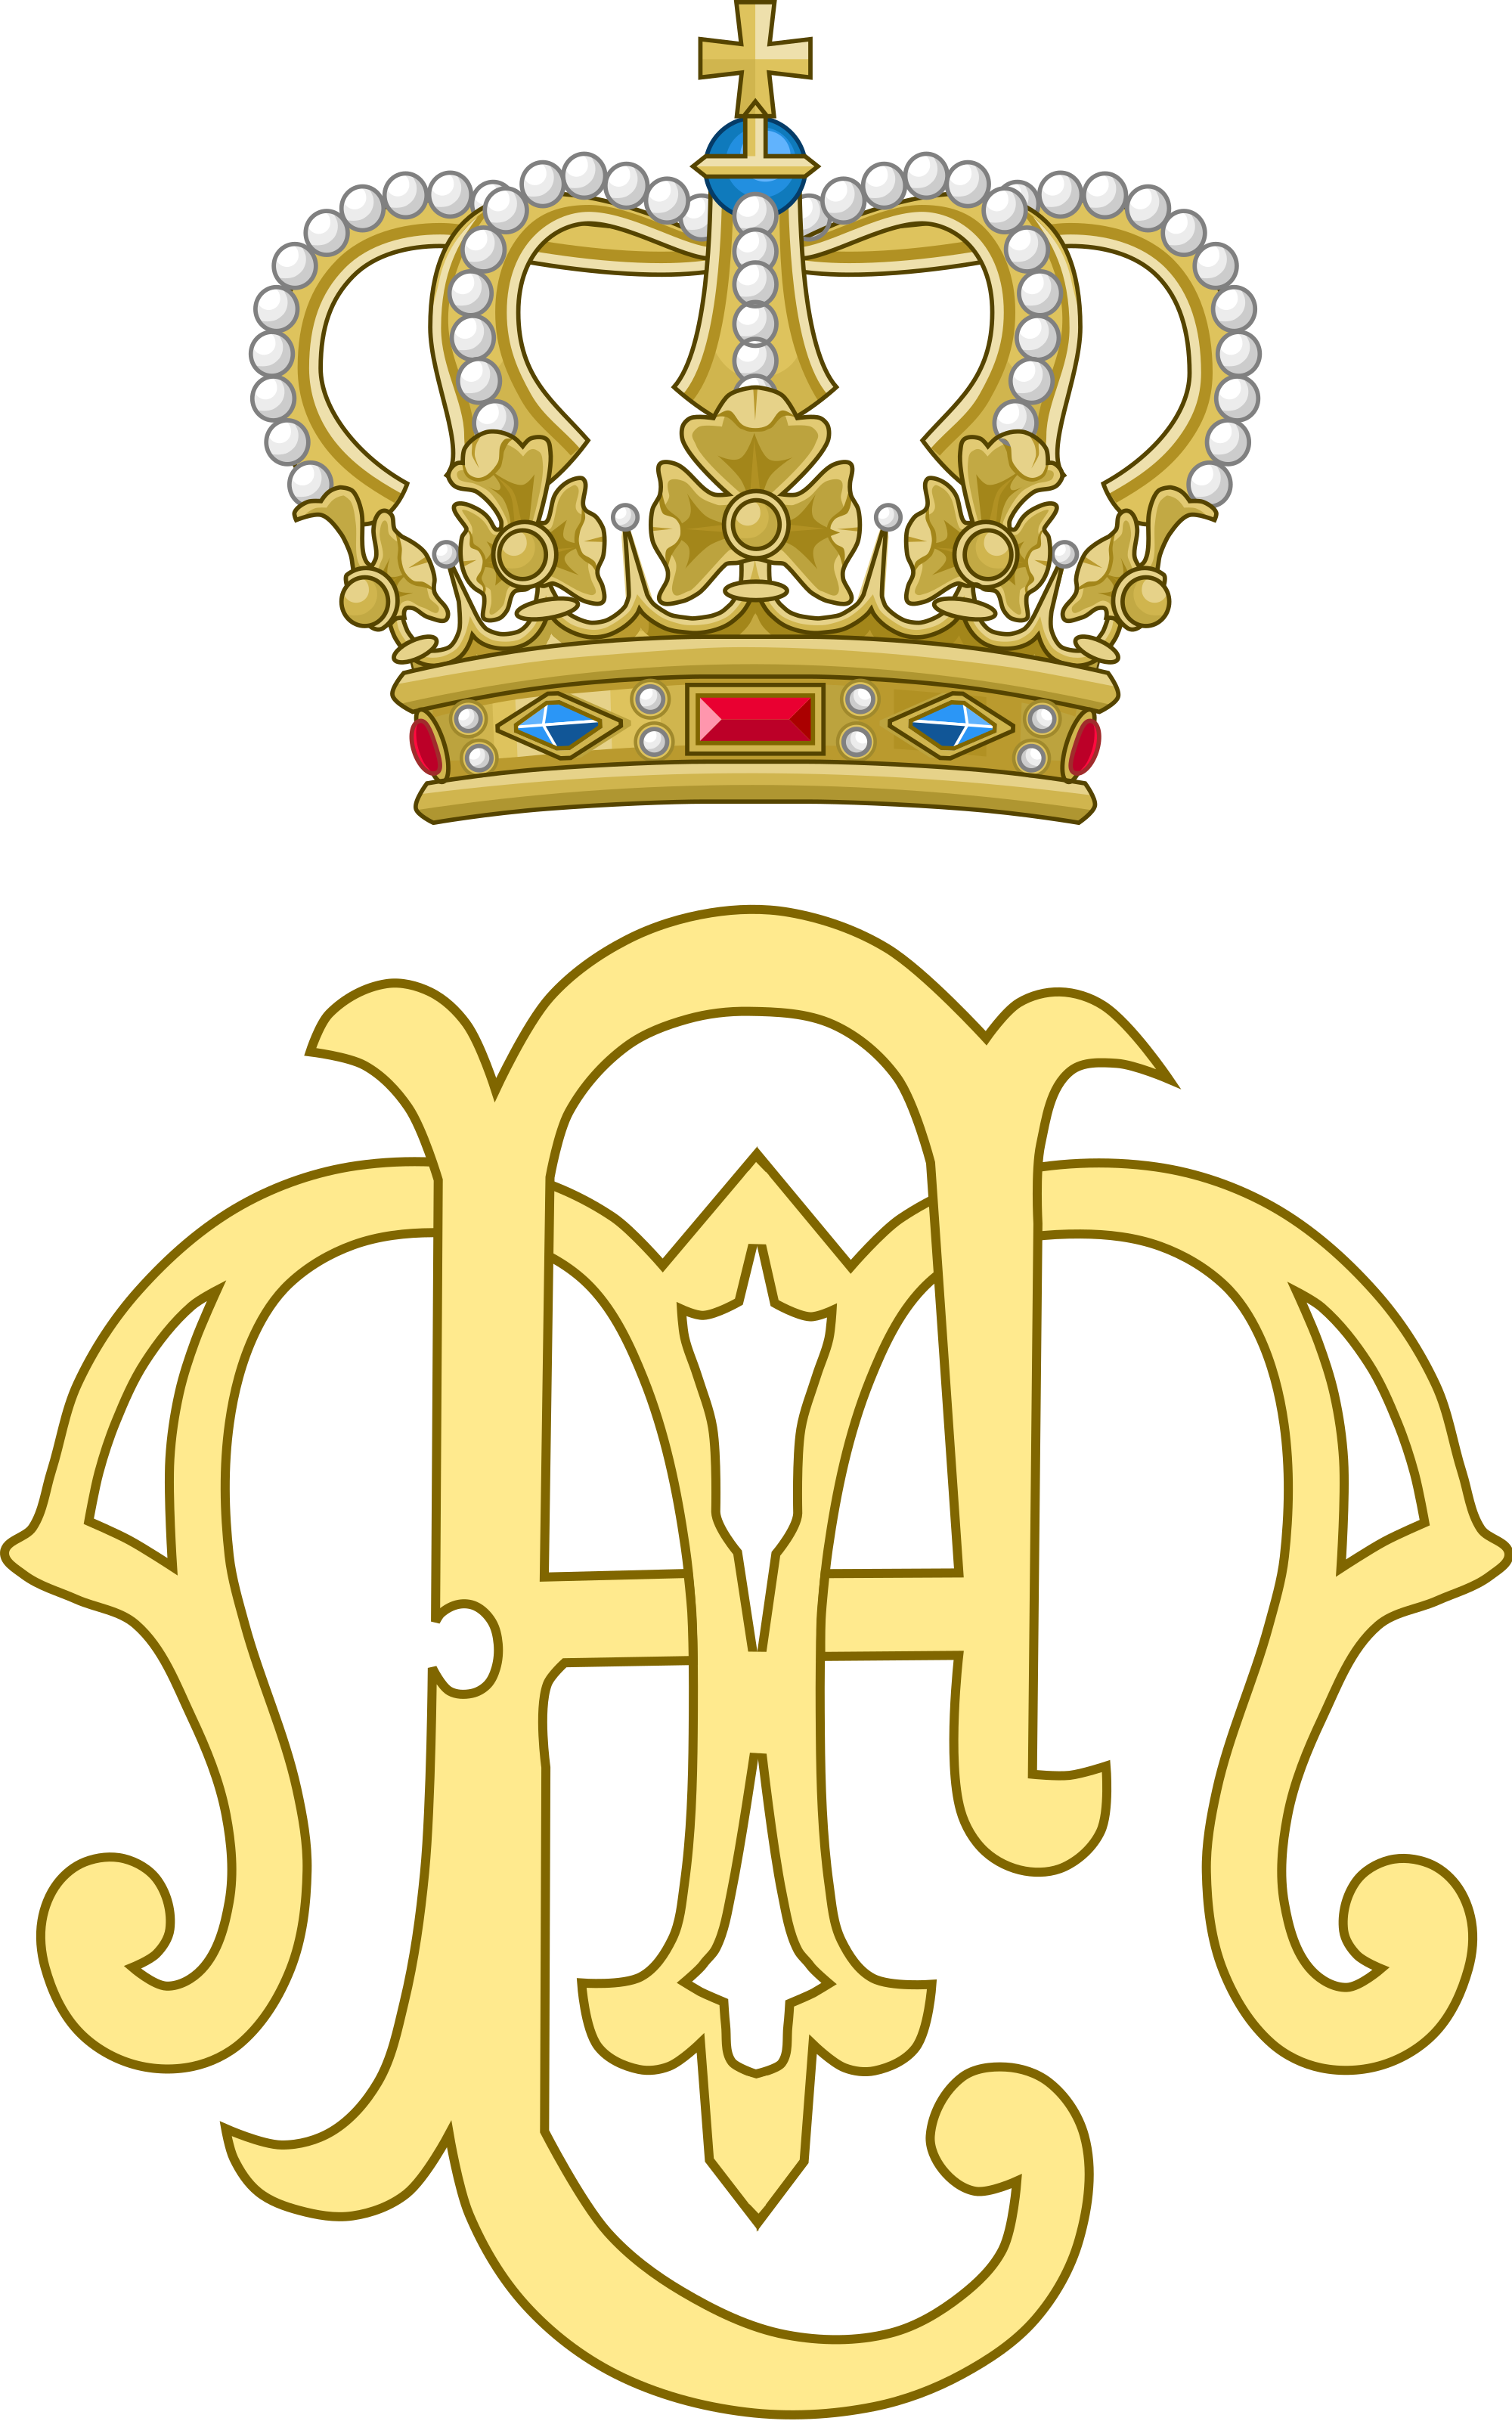 File:Dual Cypher of Duke Friedrich II and Duchess Marie of Anhalt.